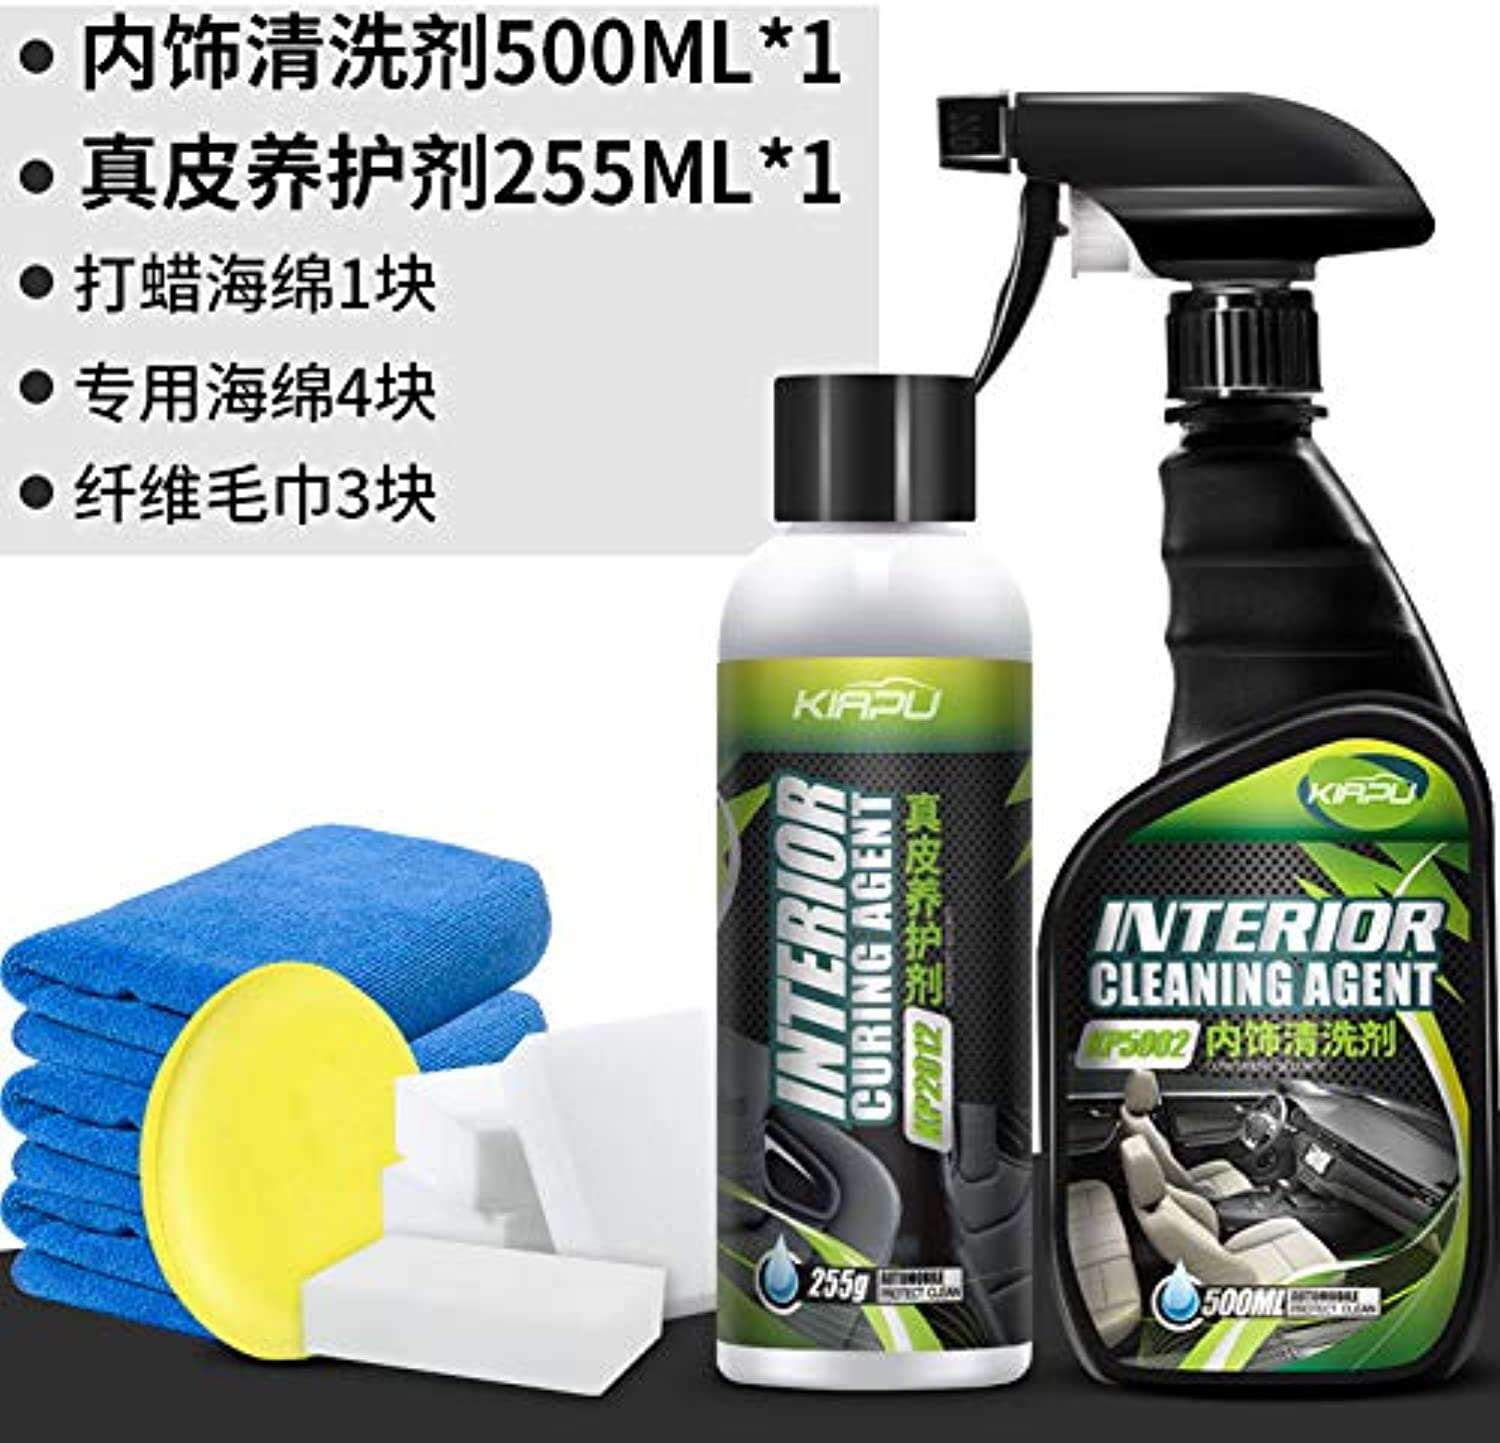 Car seat Upholstery Leather Cleaning Agent Strong decontamination Foam Cleaning Artifact Ceiling Disposable Belt